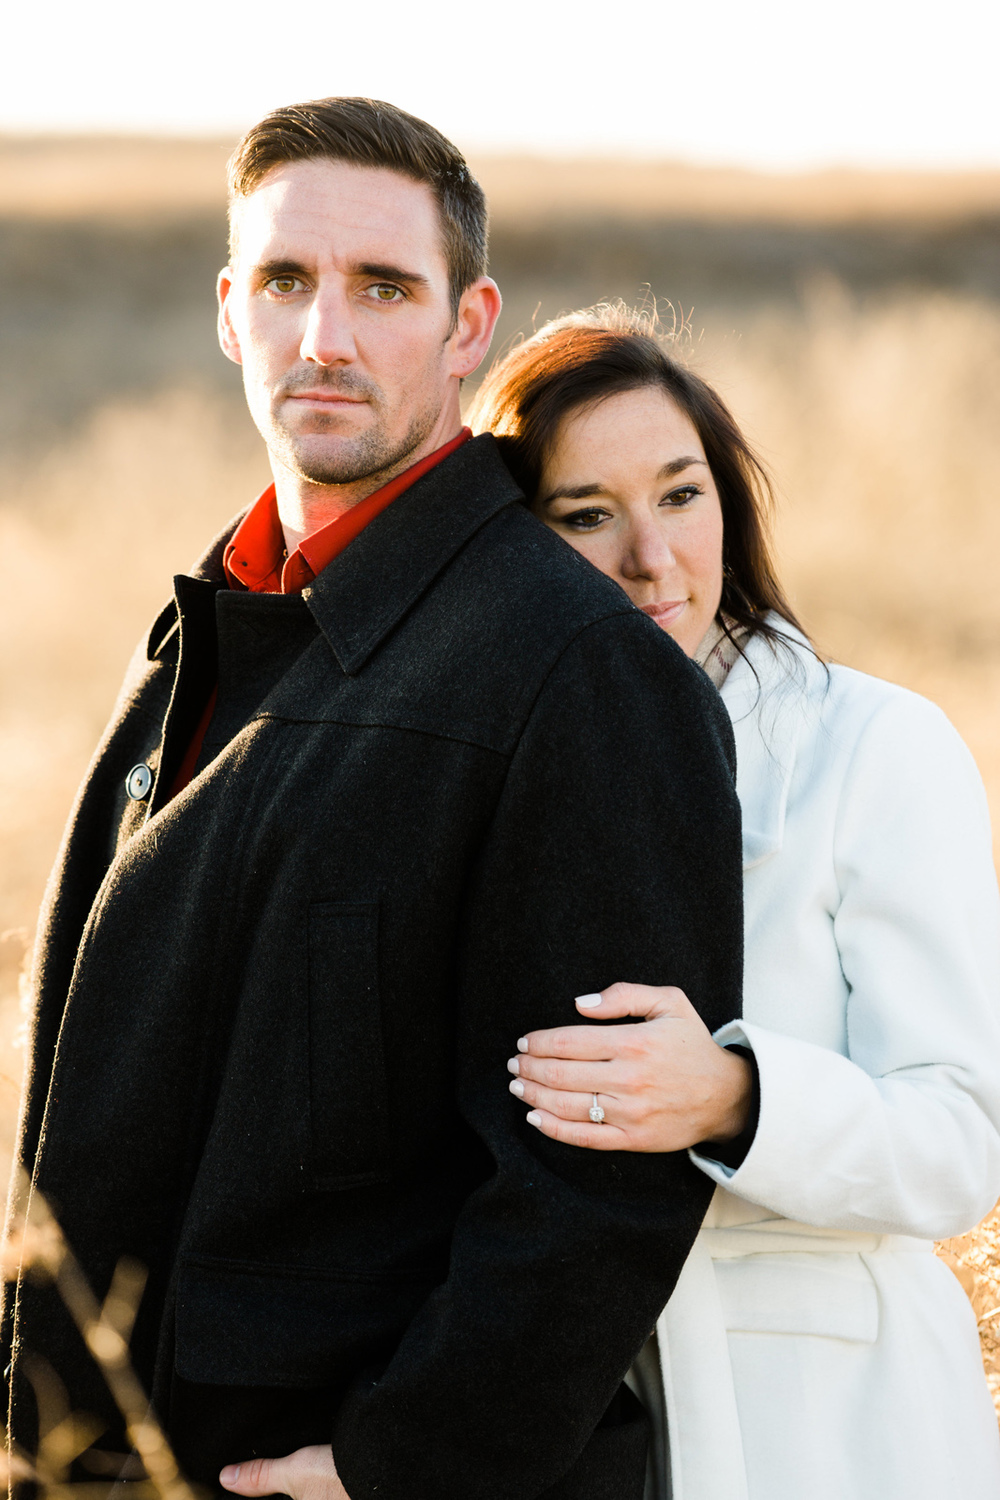 Oldani Photography-St Charles-Family Session-engagement-New Town_20141228_17002100.jpg